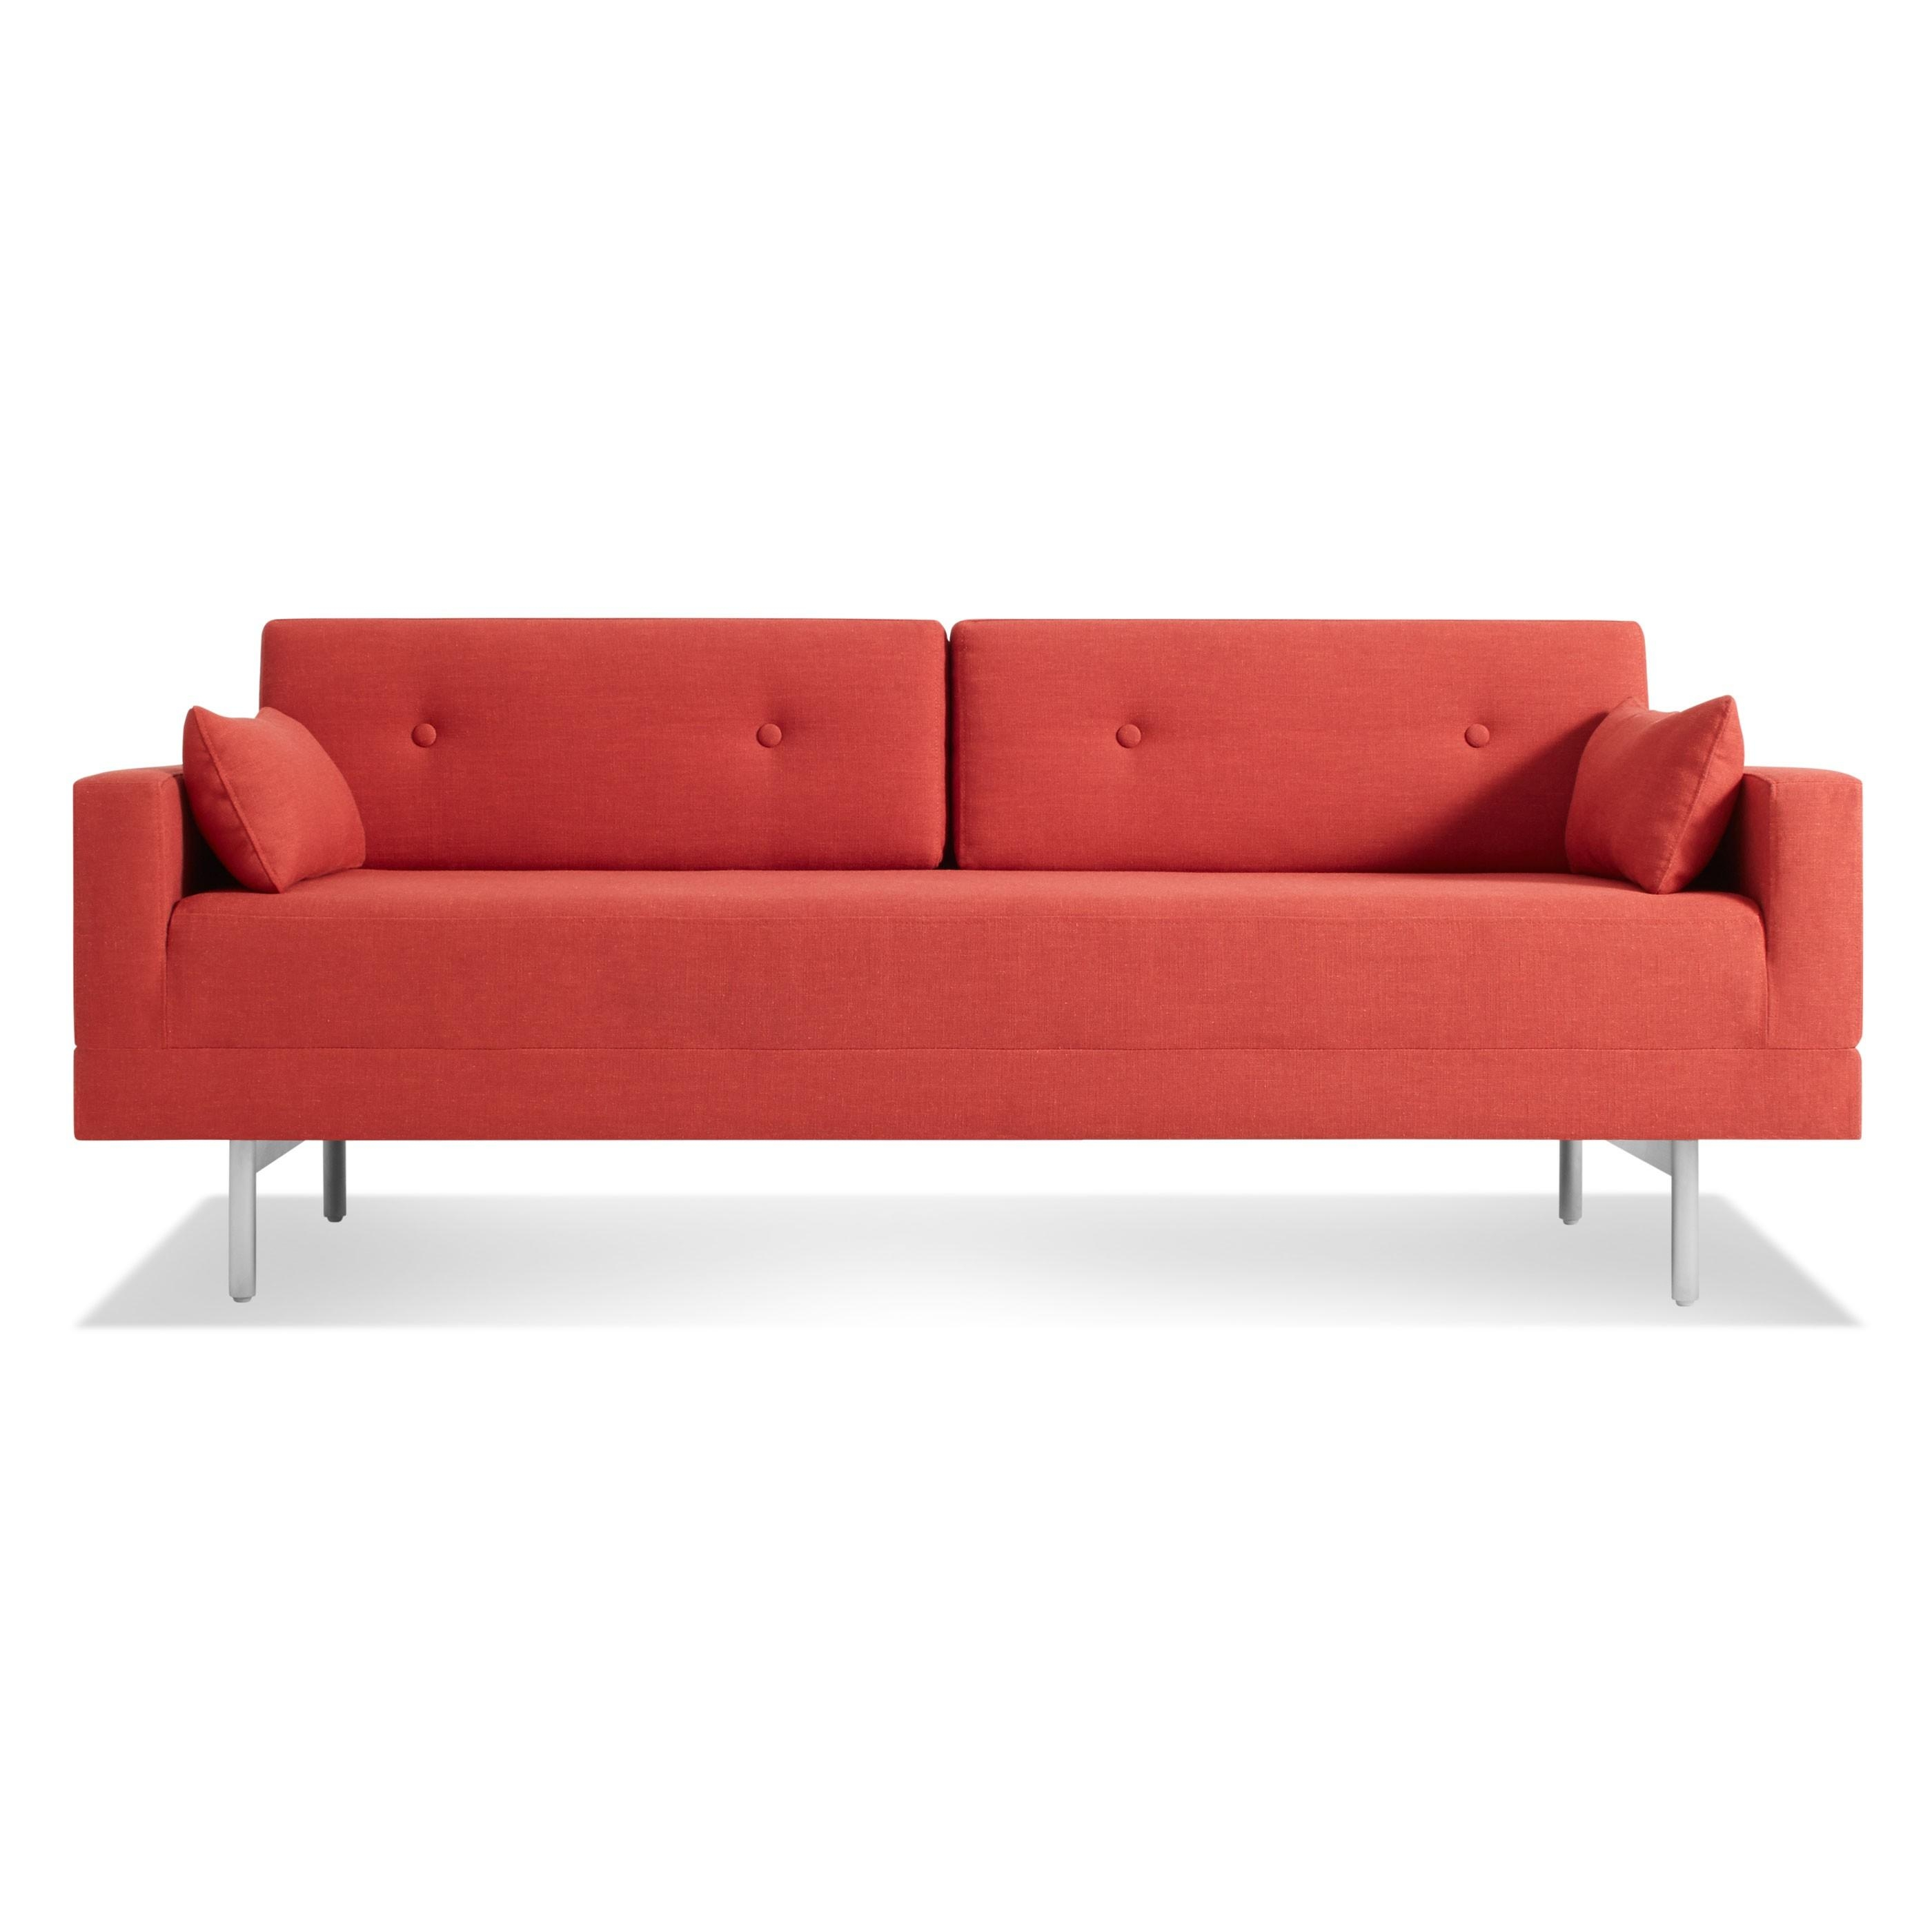 Sleeper Sofa – Diplomat Convertible Sofa | Blu Dot For Sleeper Sofas (Image 11 of 20)